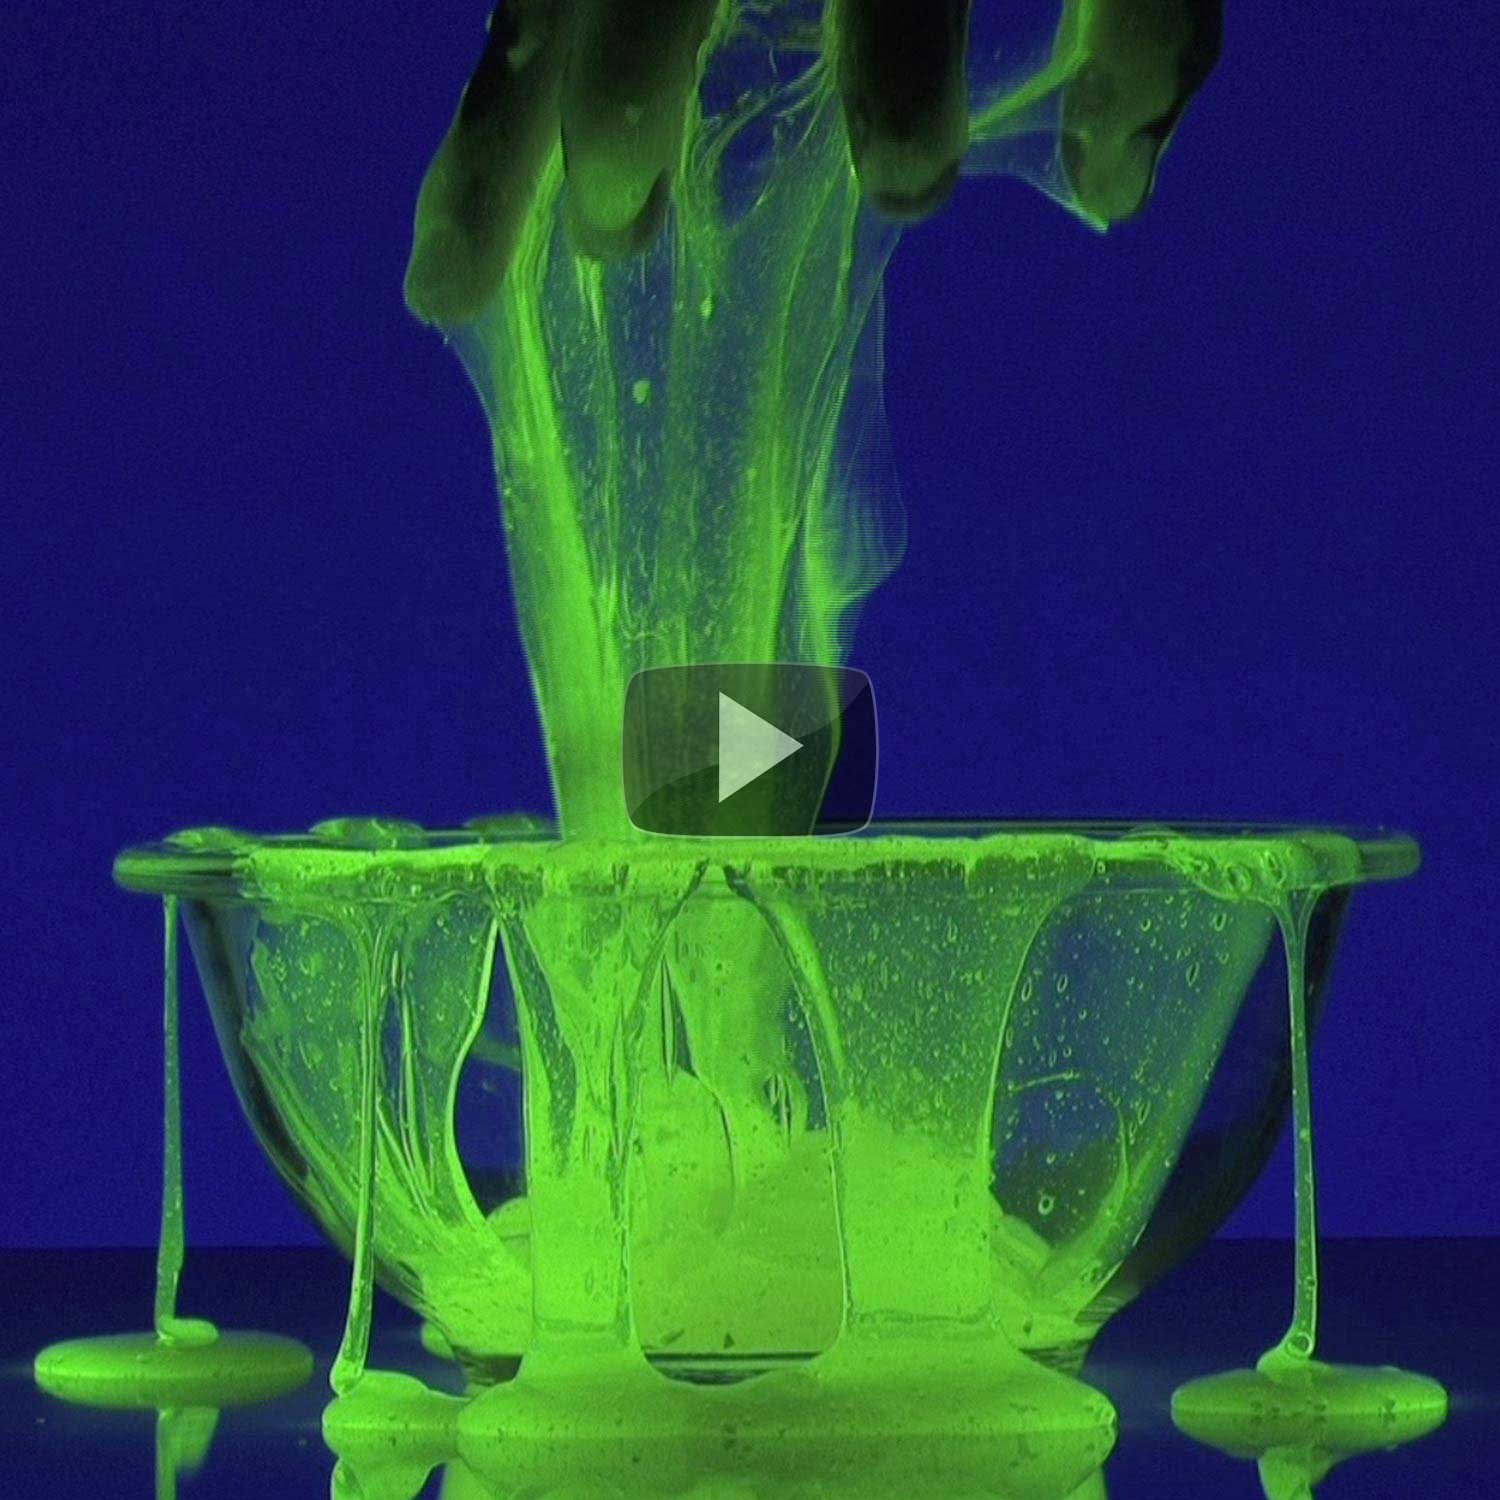 Atomic Slime Video